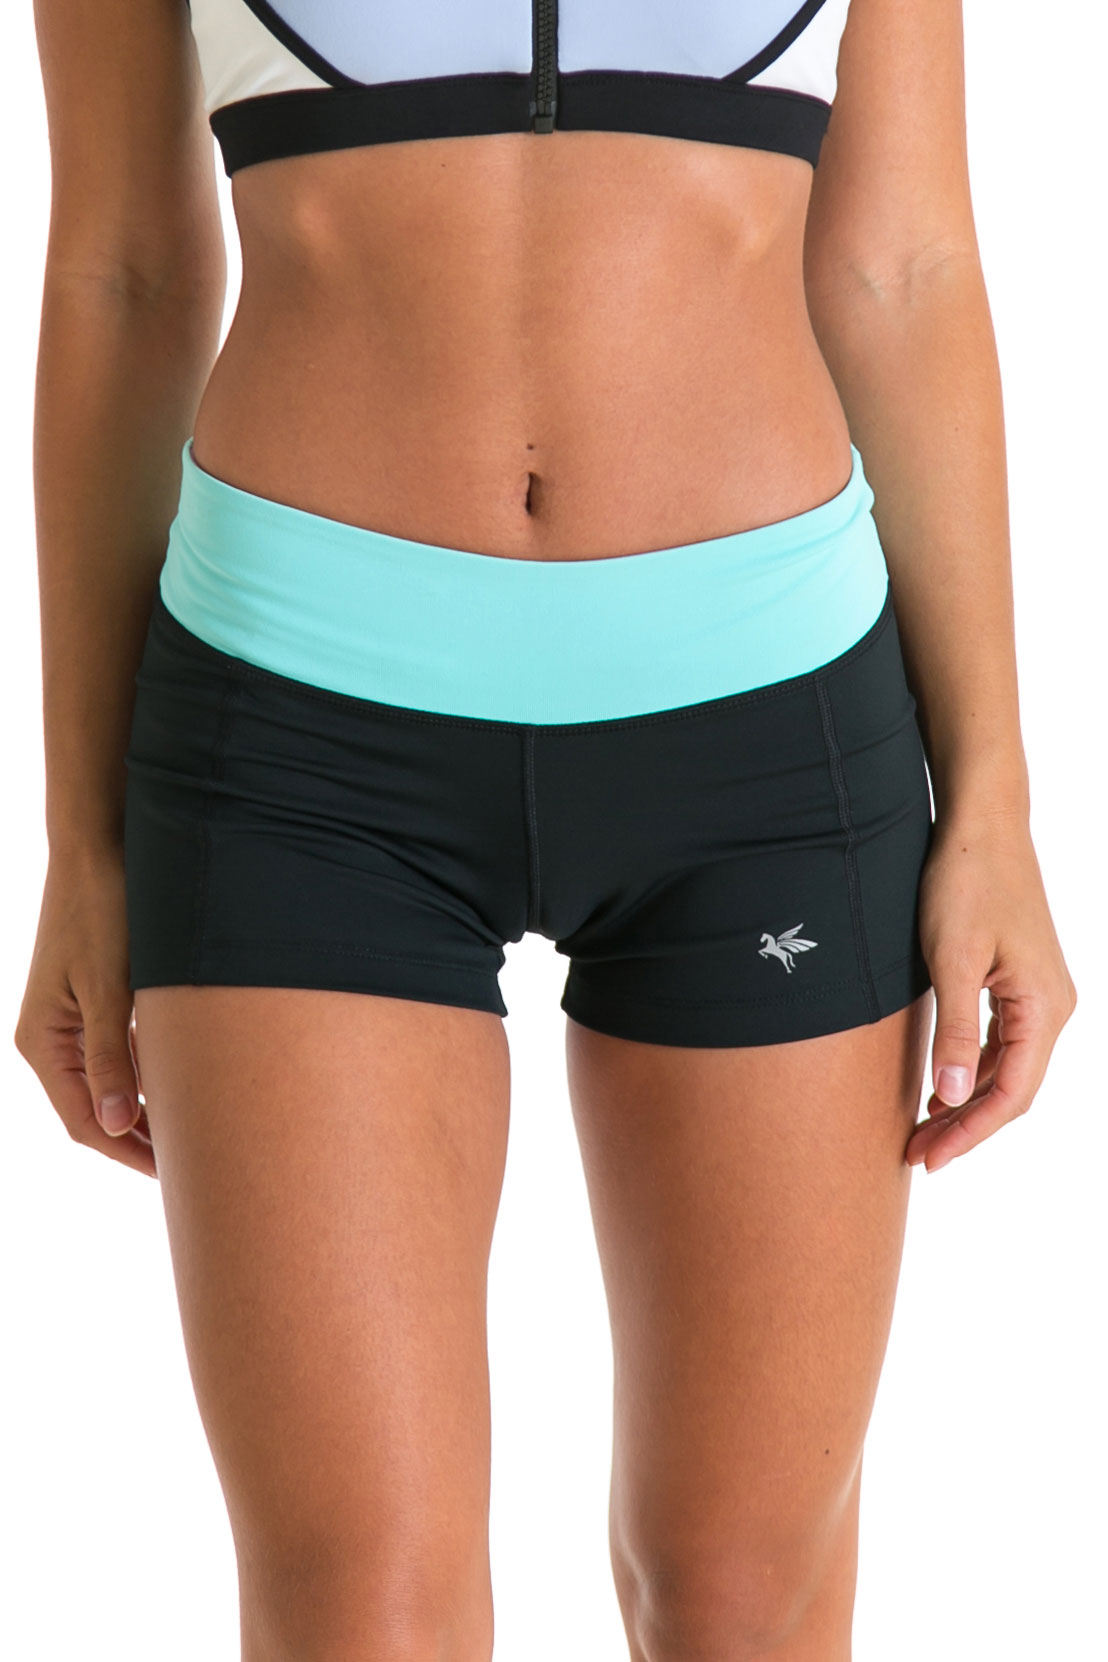 Eclipse Breeze Shorts - Xahara Activewear